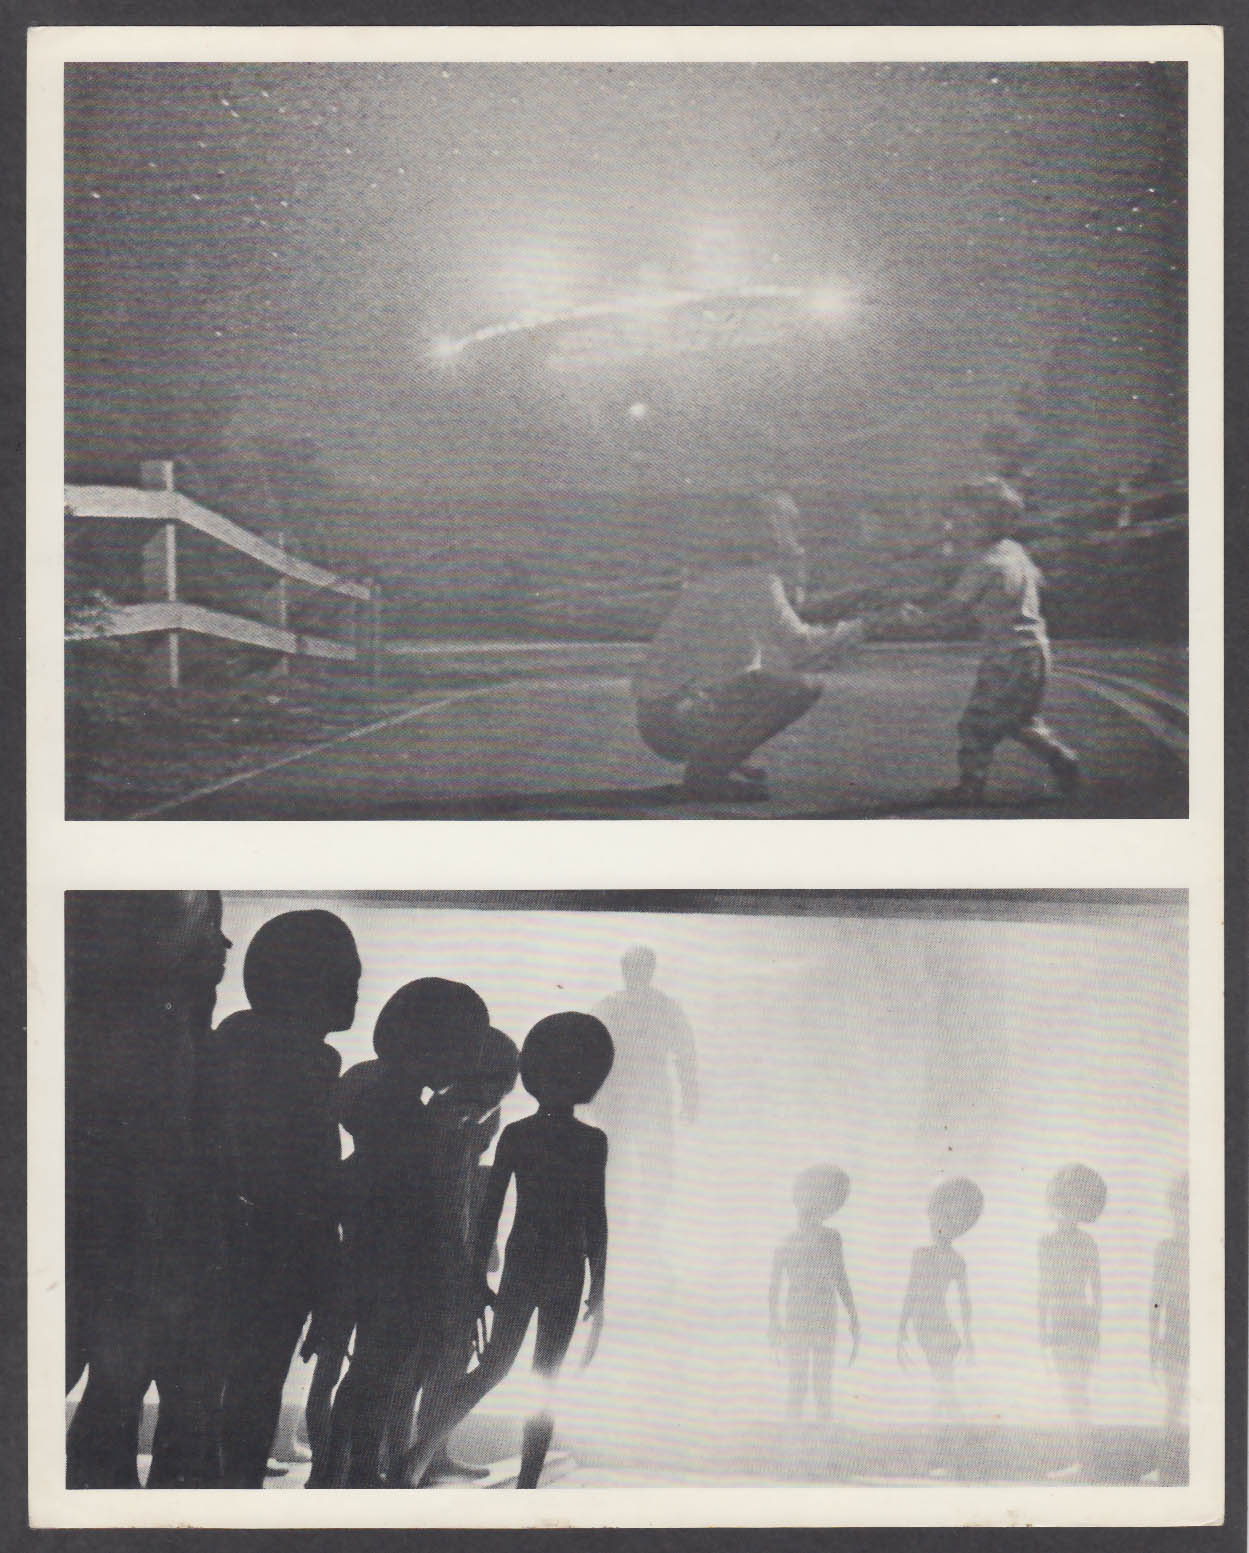 Image for Close Encounters of the Third Kind UFO & Aliens scenes 8x10 photo 1977